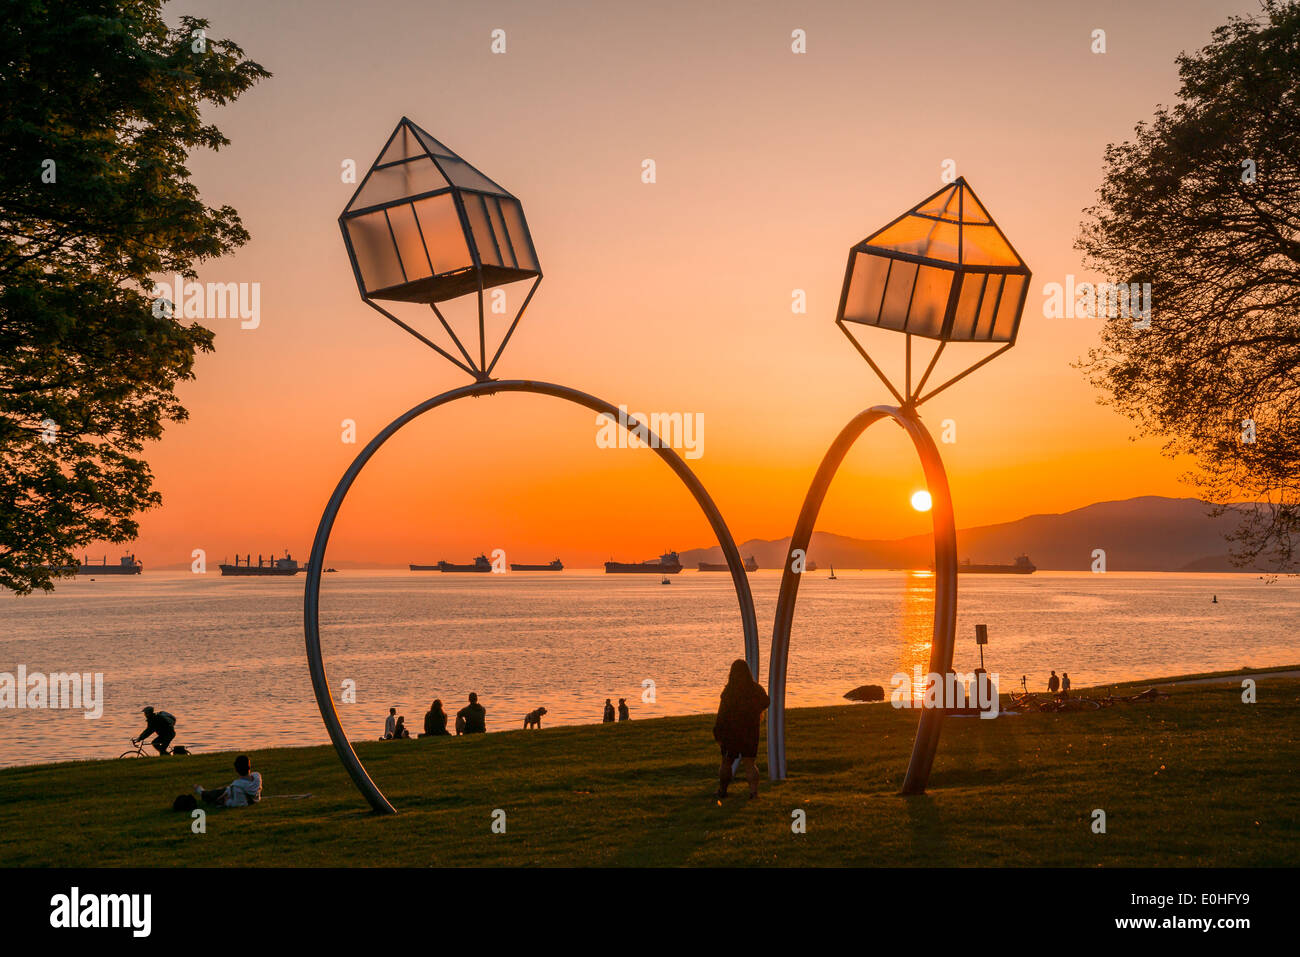 Vancouver Engagement Rings Sculpture